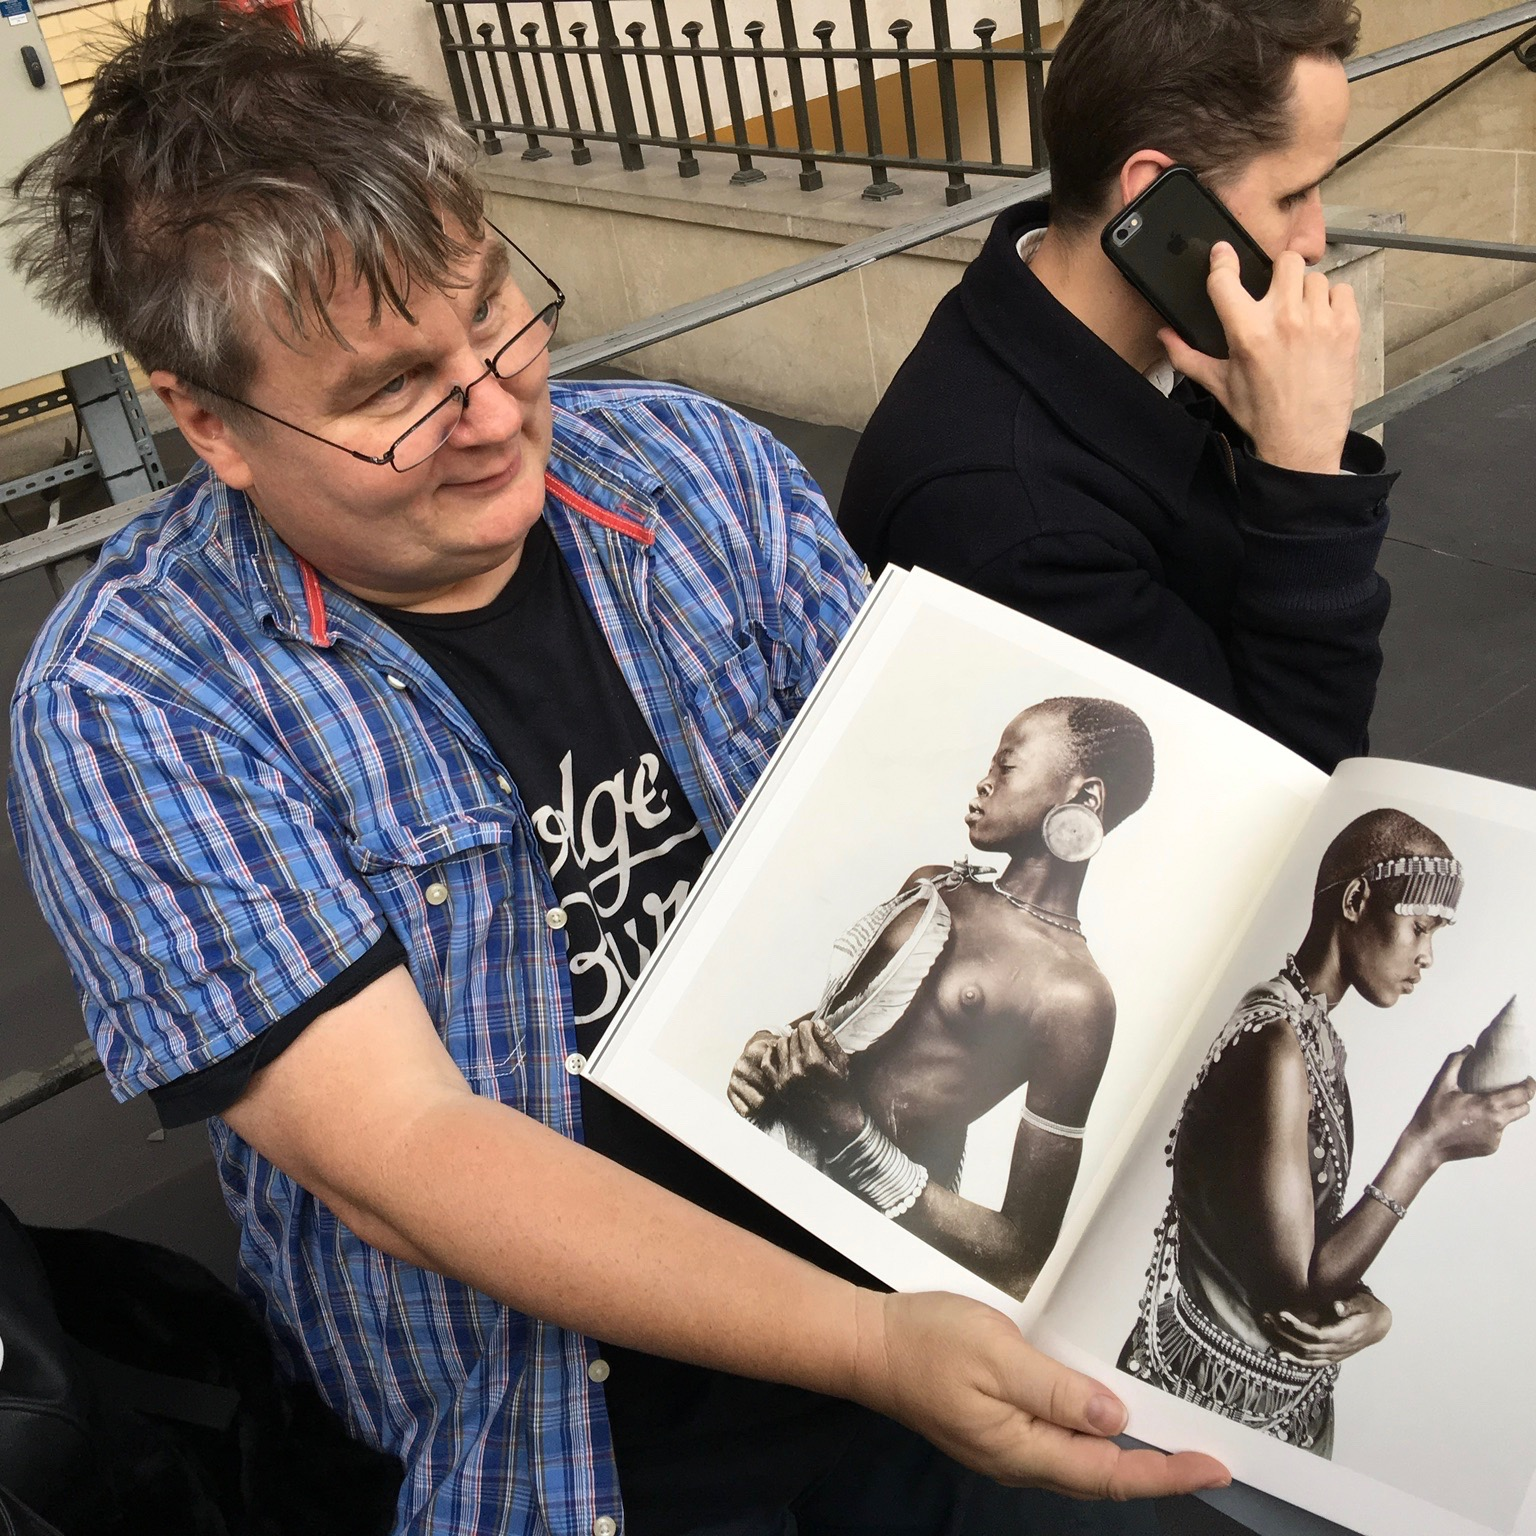 PHOTO PARIS: JAN BROUGHT OUT HIS FIRST EVER BOOK AT PHOTO PARIS THIS YEAR AND WE WERE HONORED TO GO AND SUPPORT HIM!